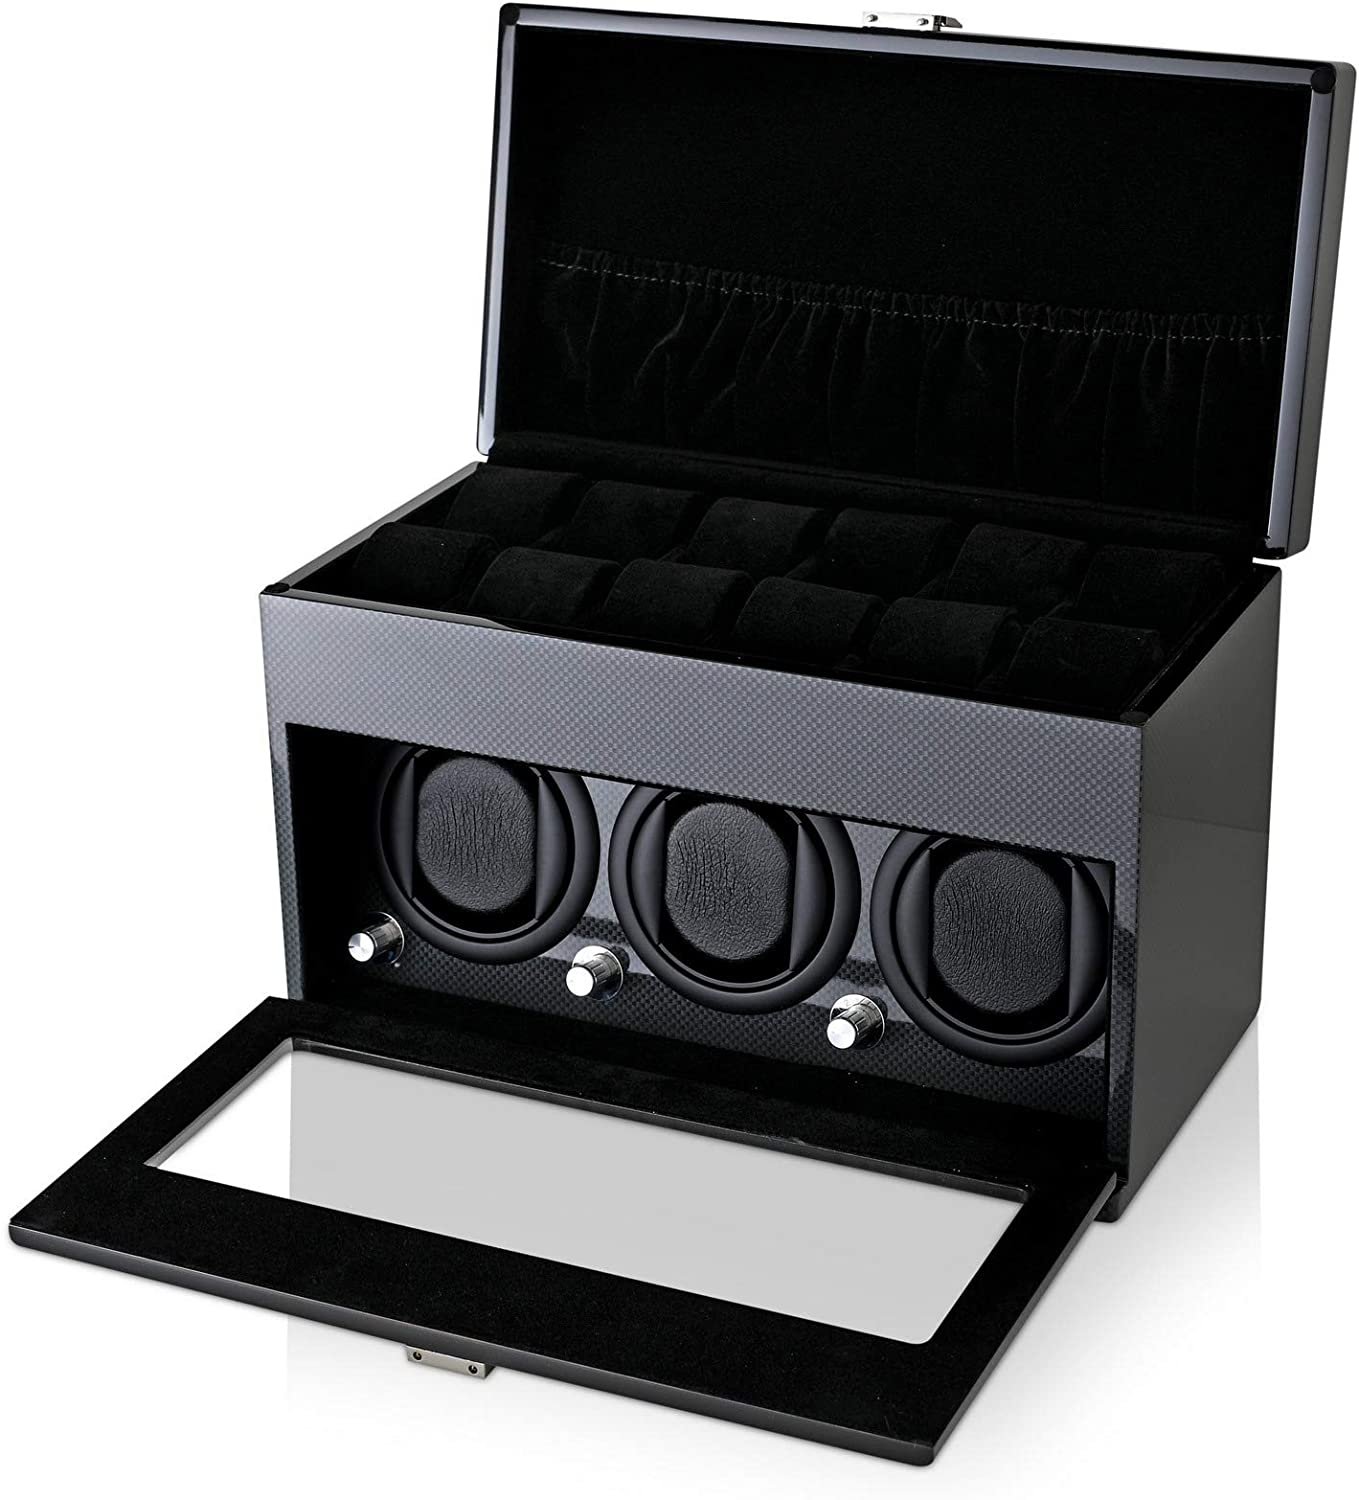 Watch Winder and Storage Box for Winding 3 Automatic Watches and 12 Watch Storage Space